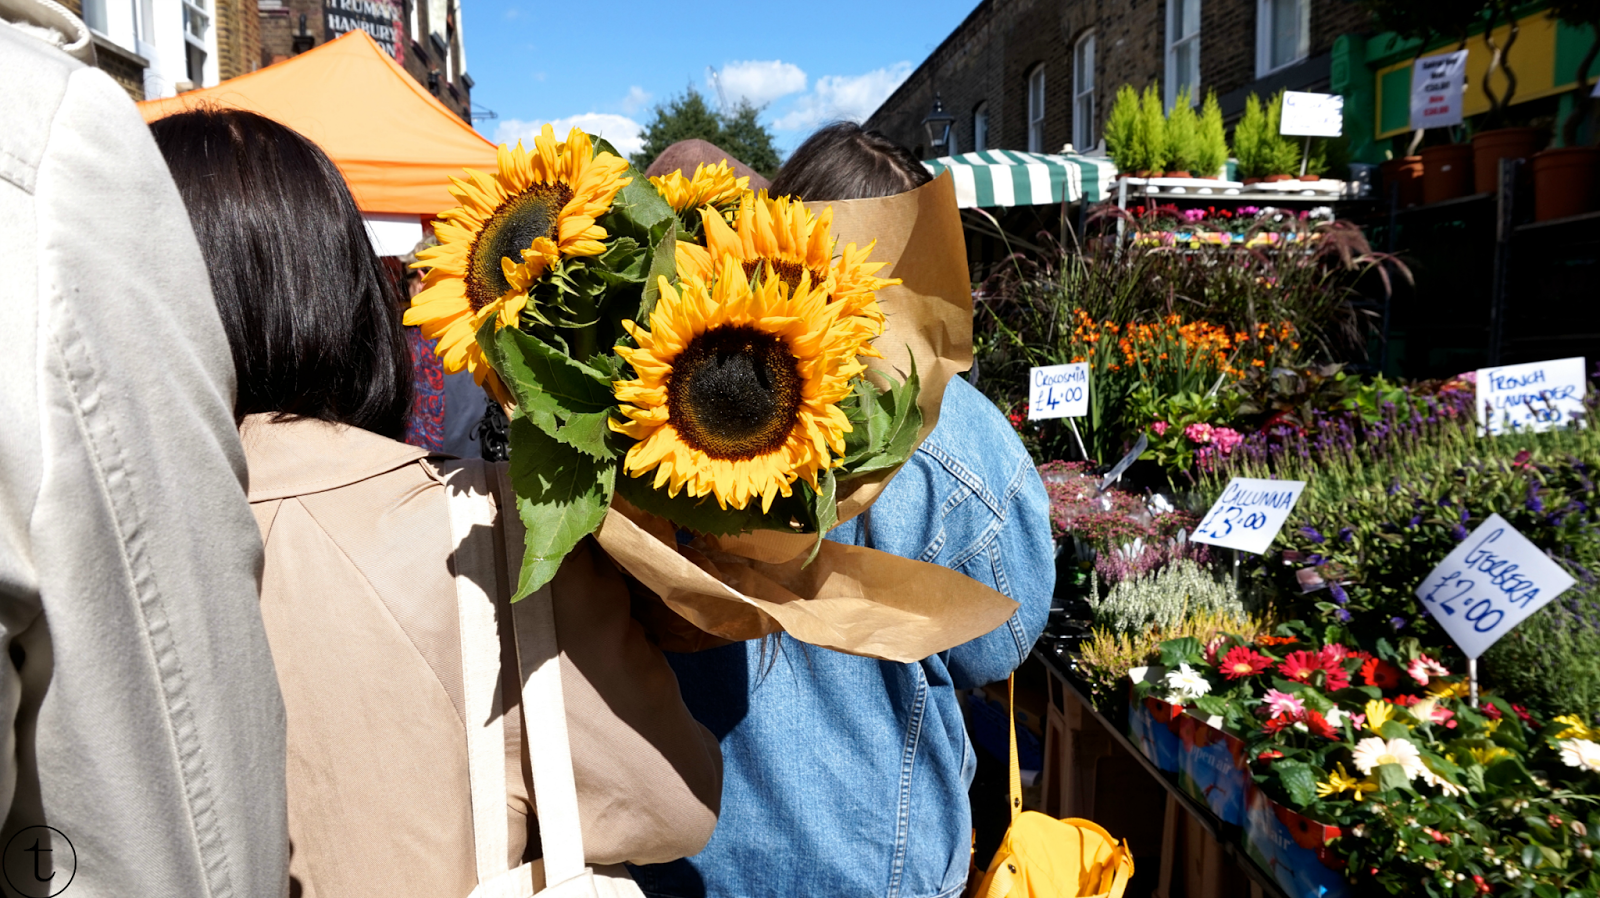 sunflowers at columbia road flower market in london